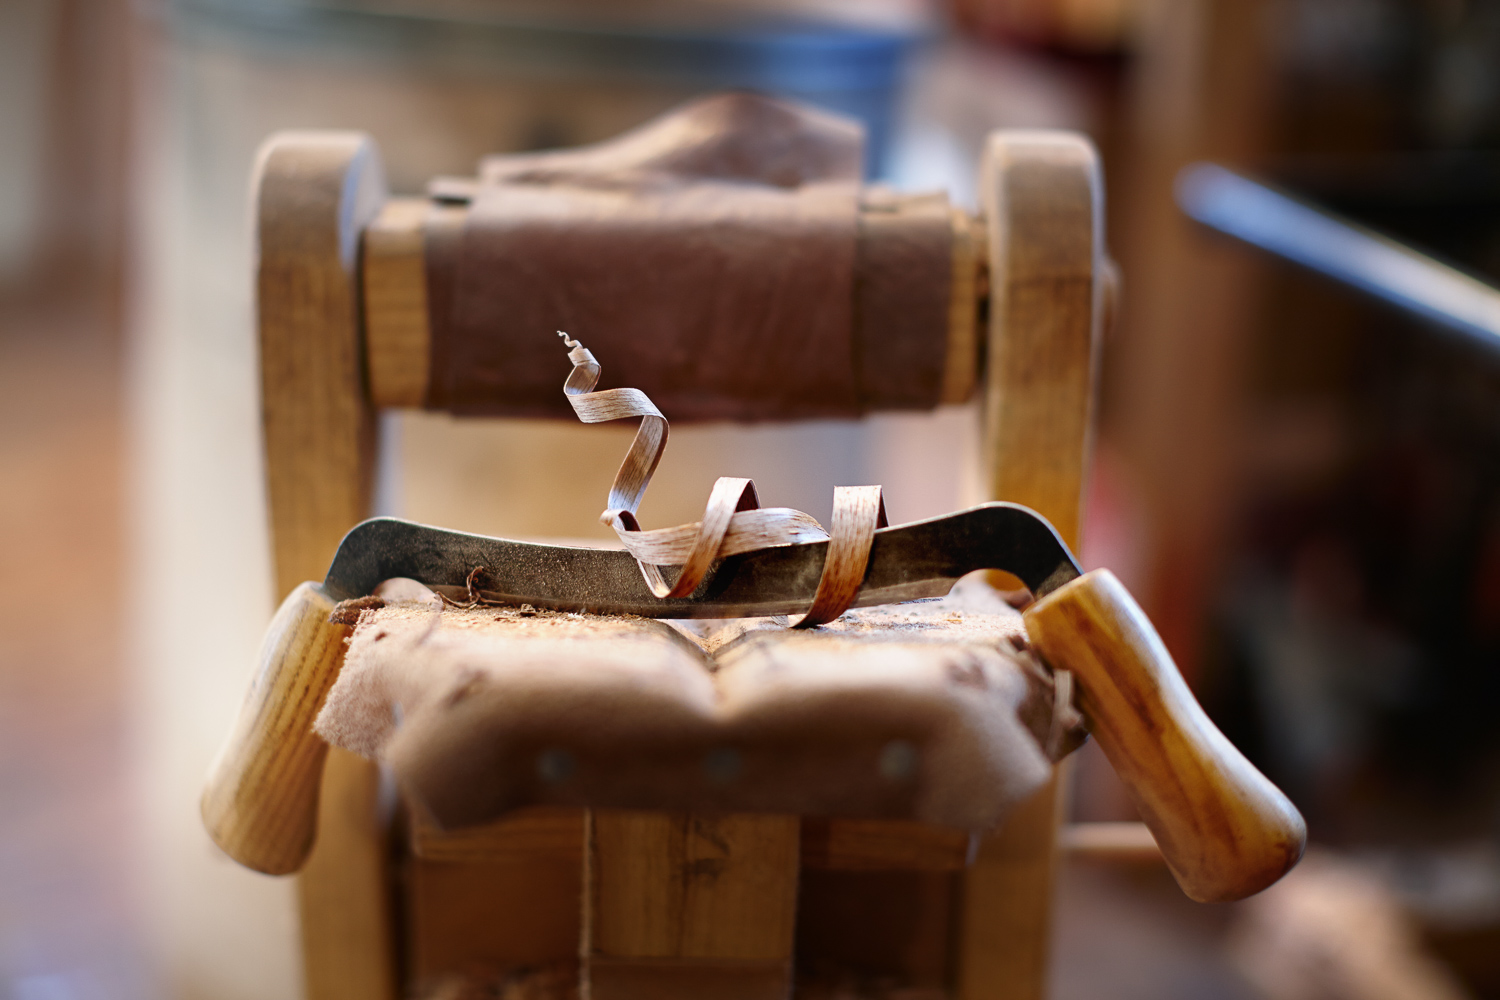 editorial detail of a wood workers plane